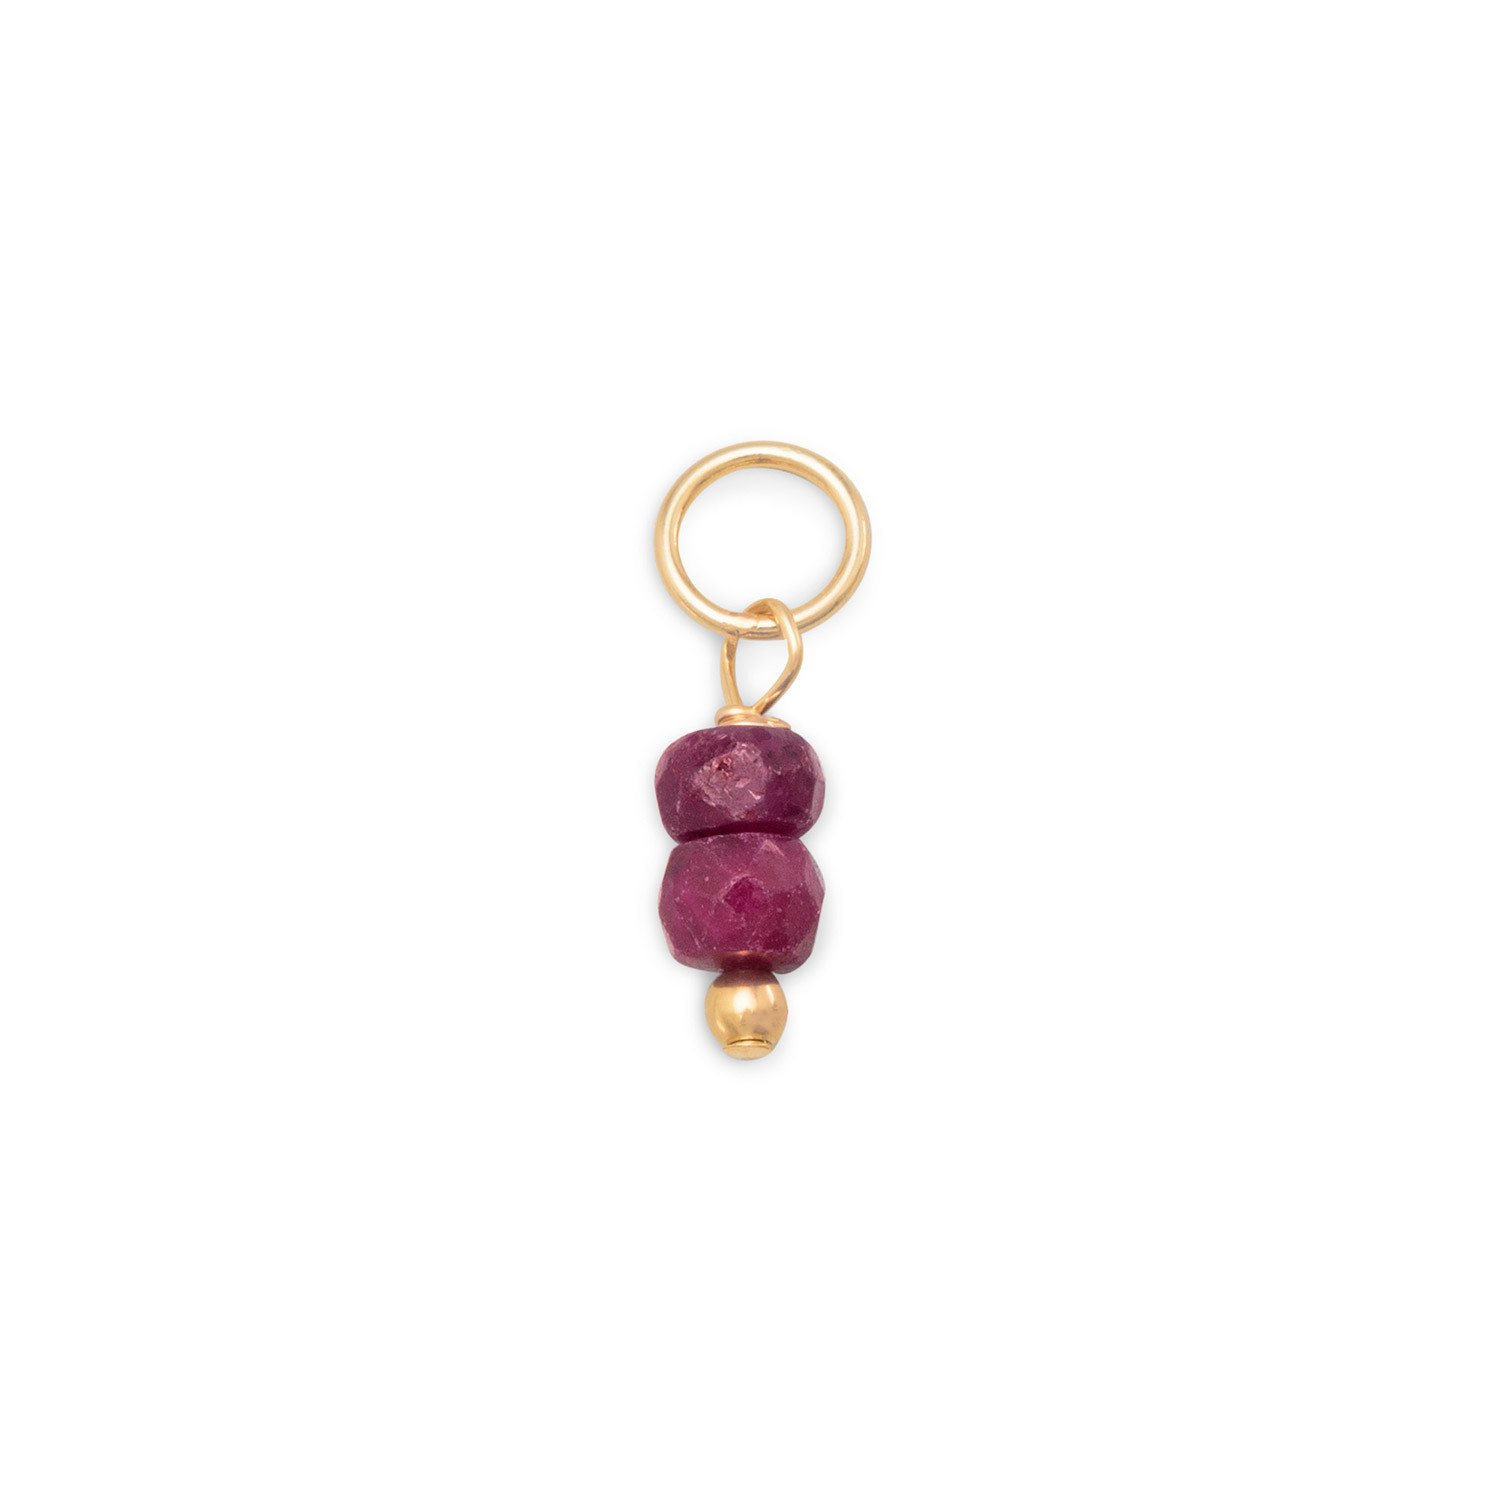 14/20 Gold Filled Corundum Rondell Charm – July Birthstone